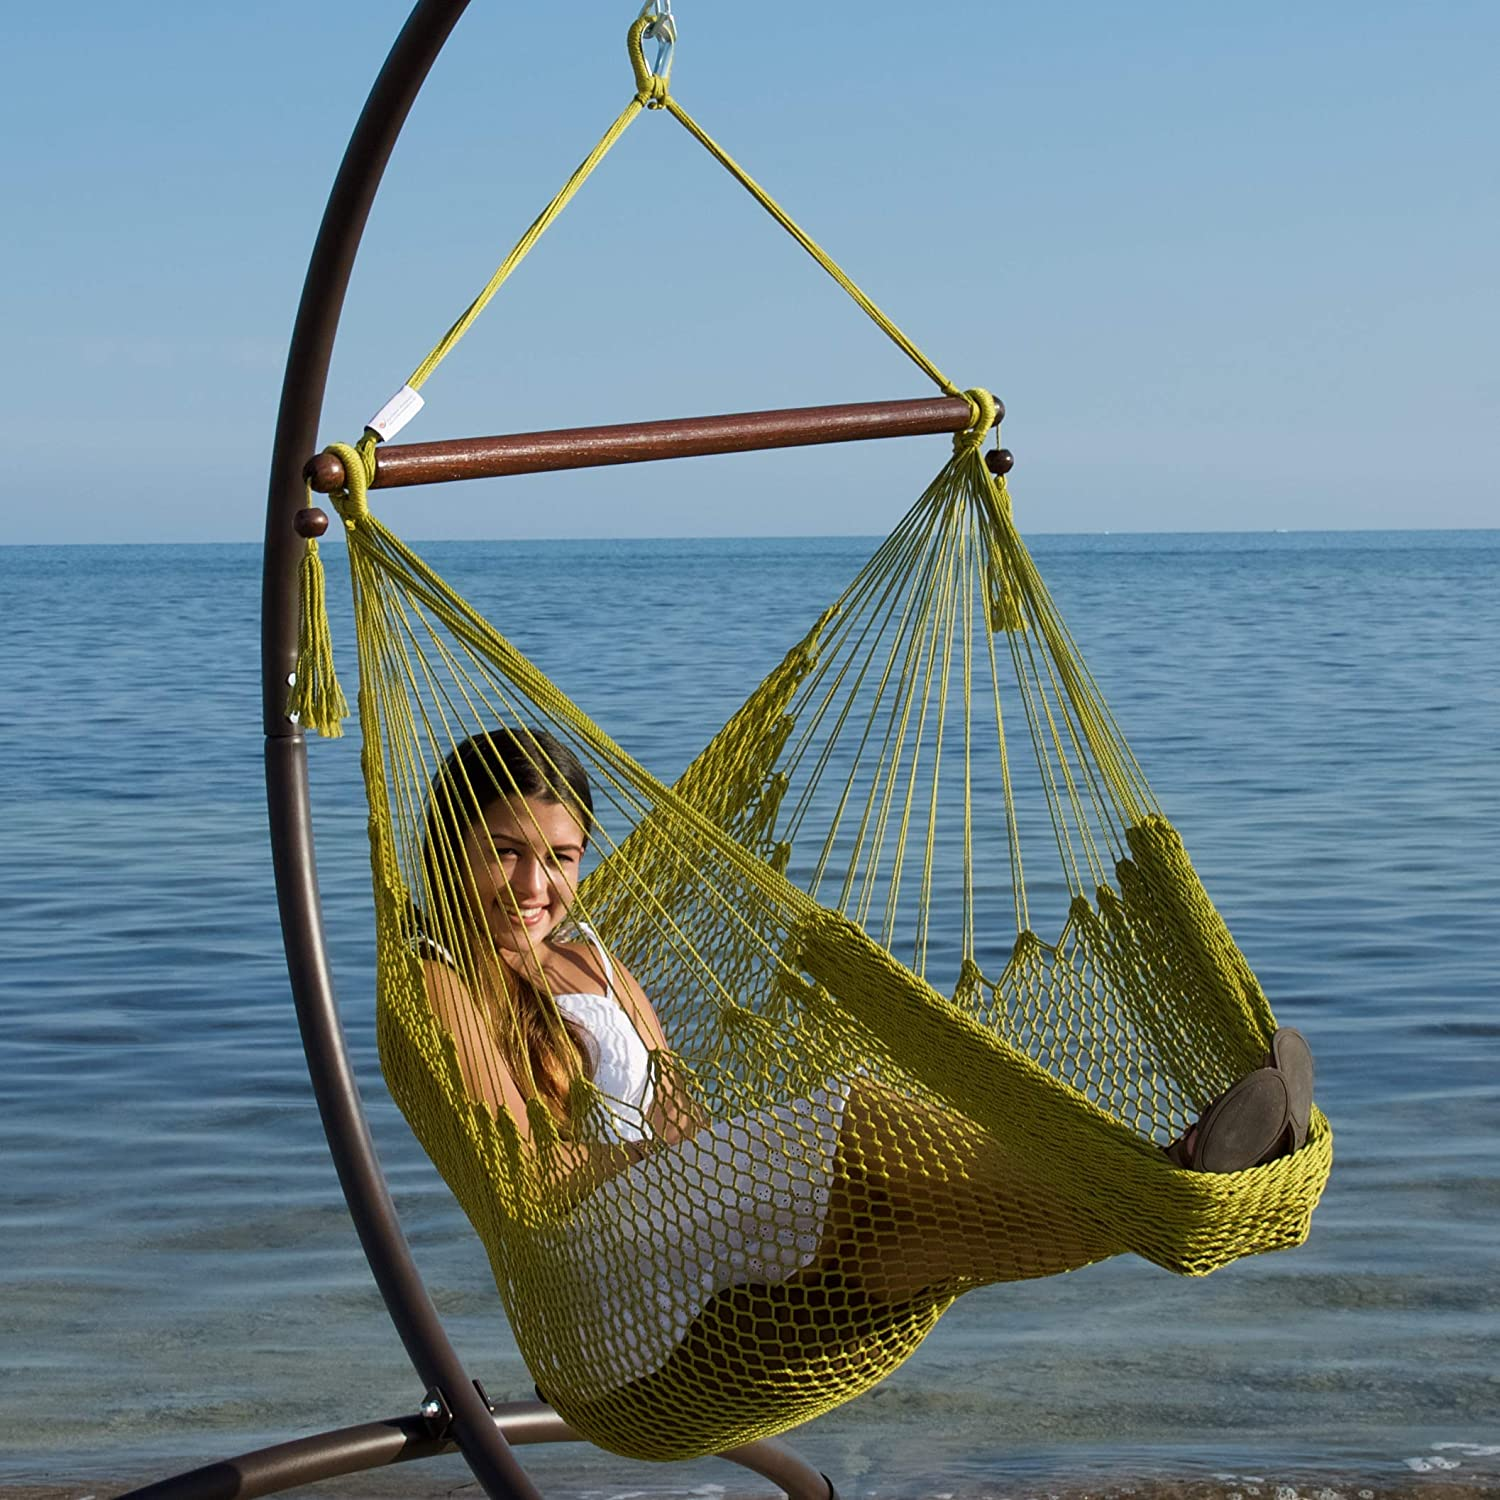 Caribbean Hammocks Hammock Chair with Footrest - 40 inch - Olive Green - 200 lbs Weight Capacity